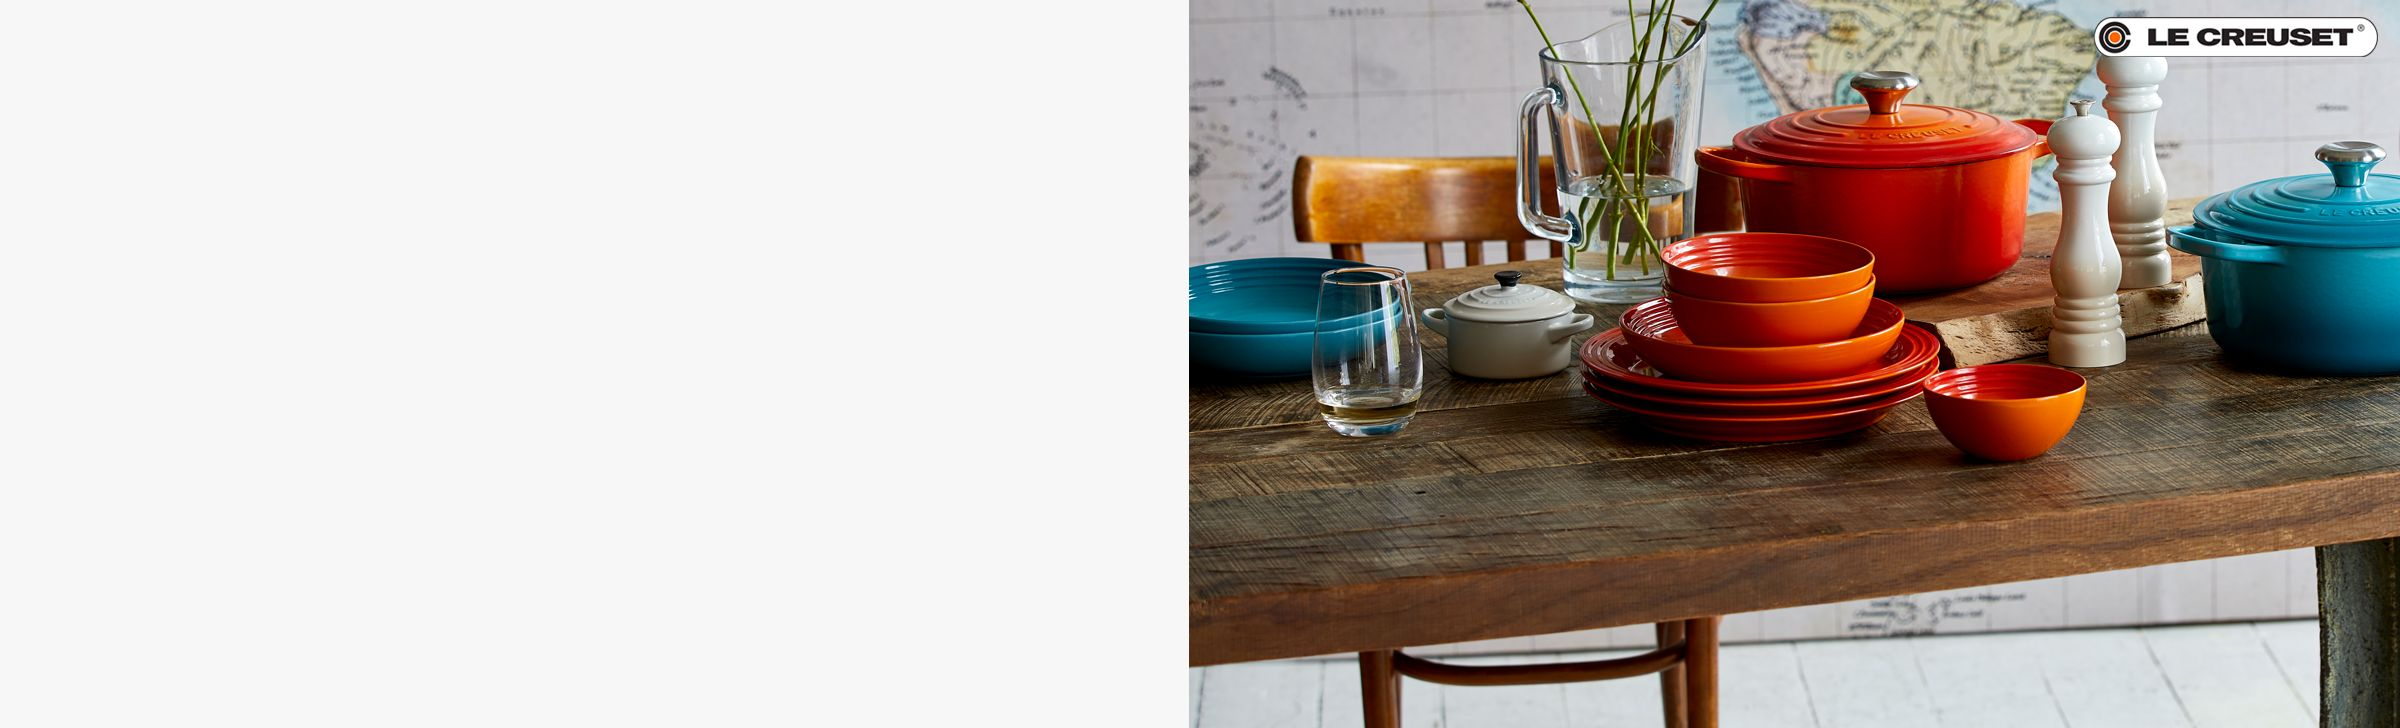 DISCOVER LE CREUSET